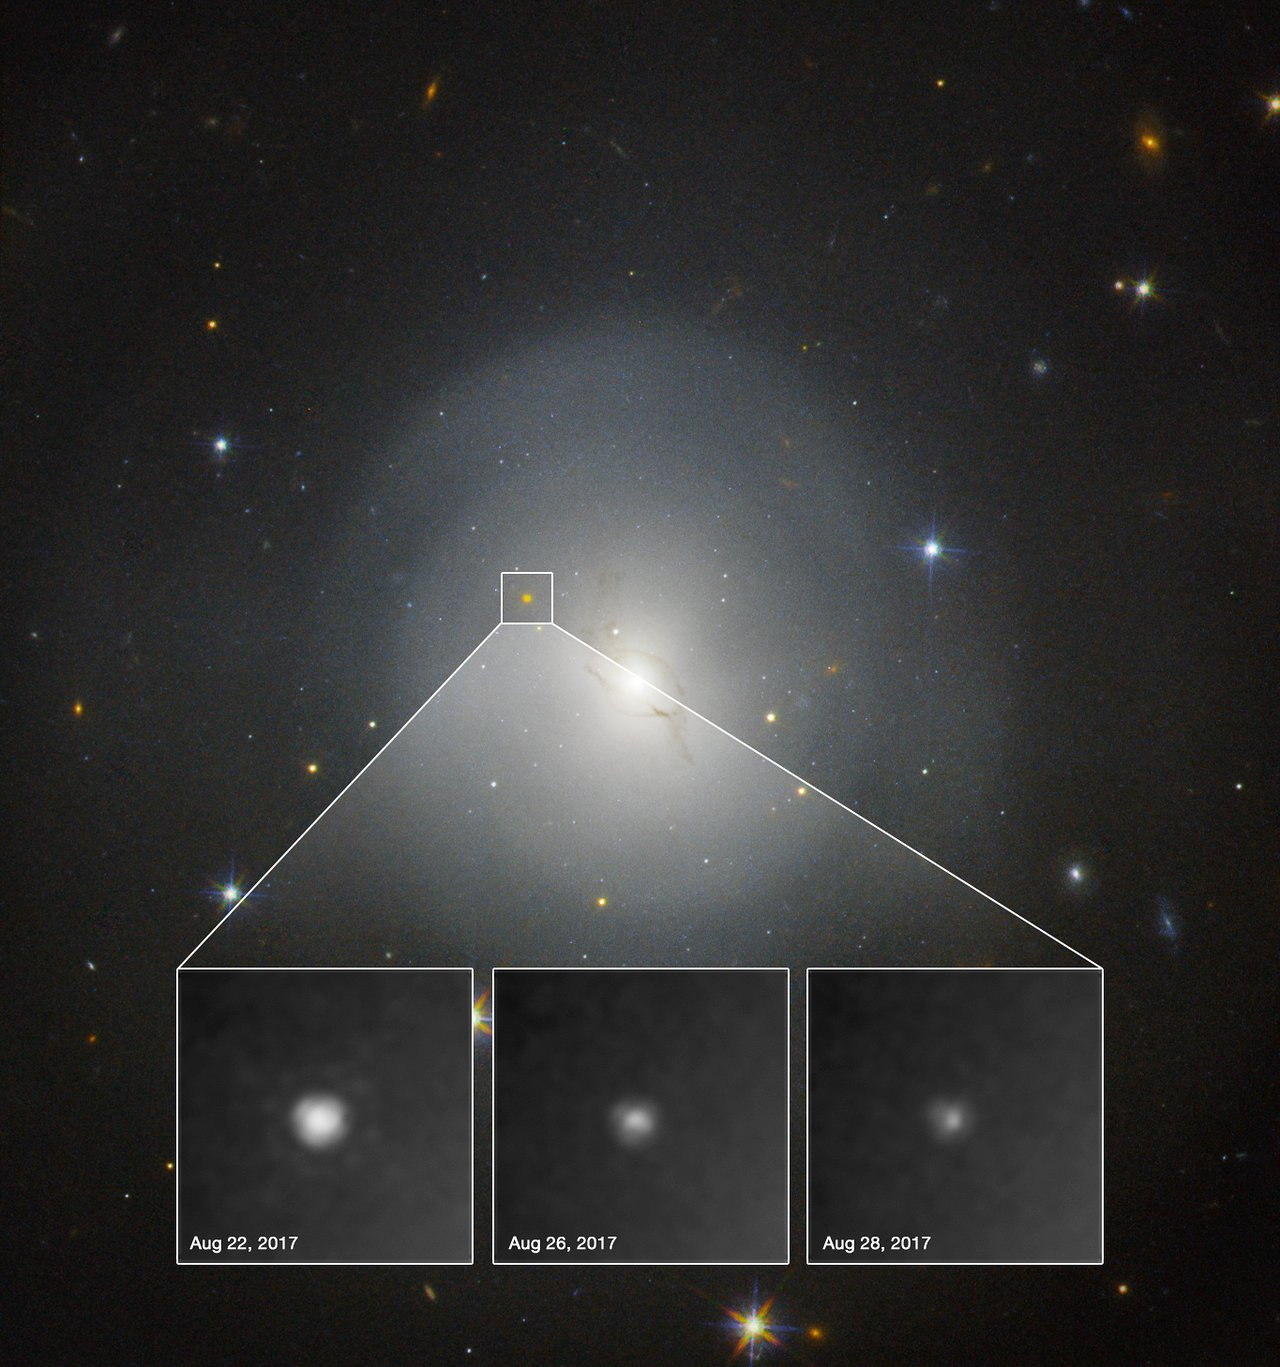 ESO Telescopes Observe First Light from Gravitational Wave